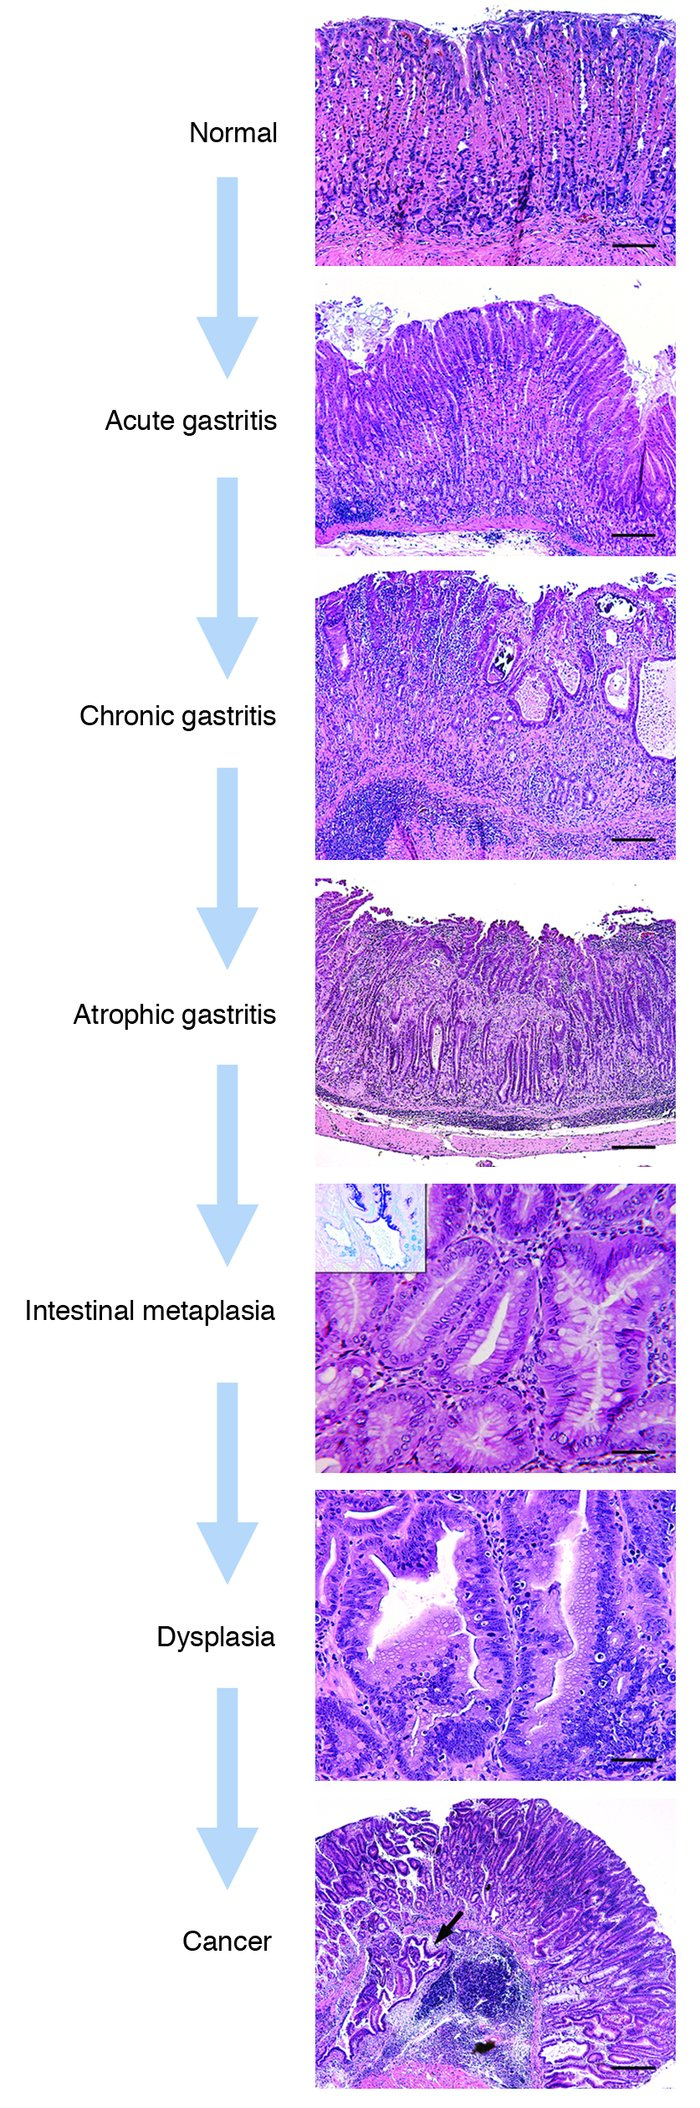 Gastric cancer histological classification, Much more than documents.